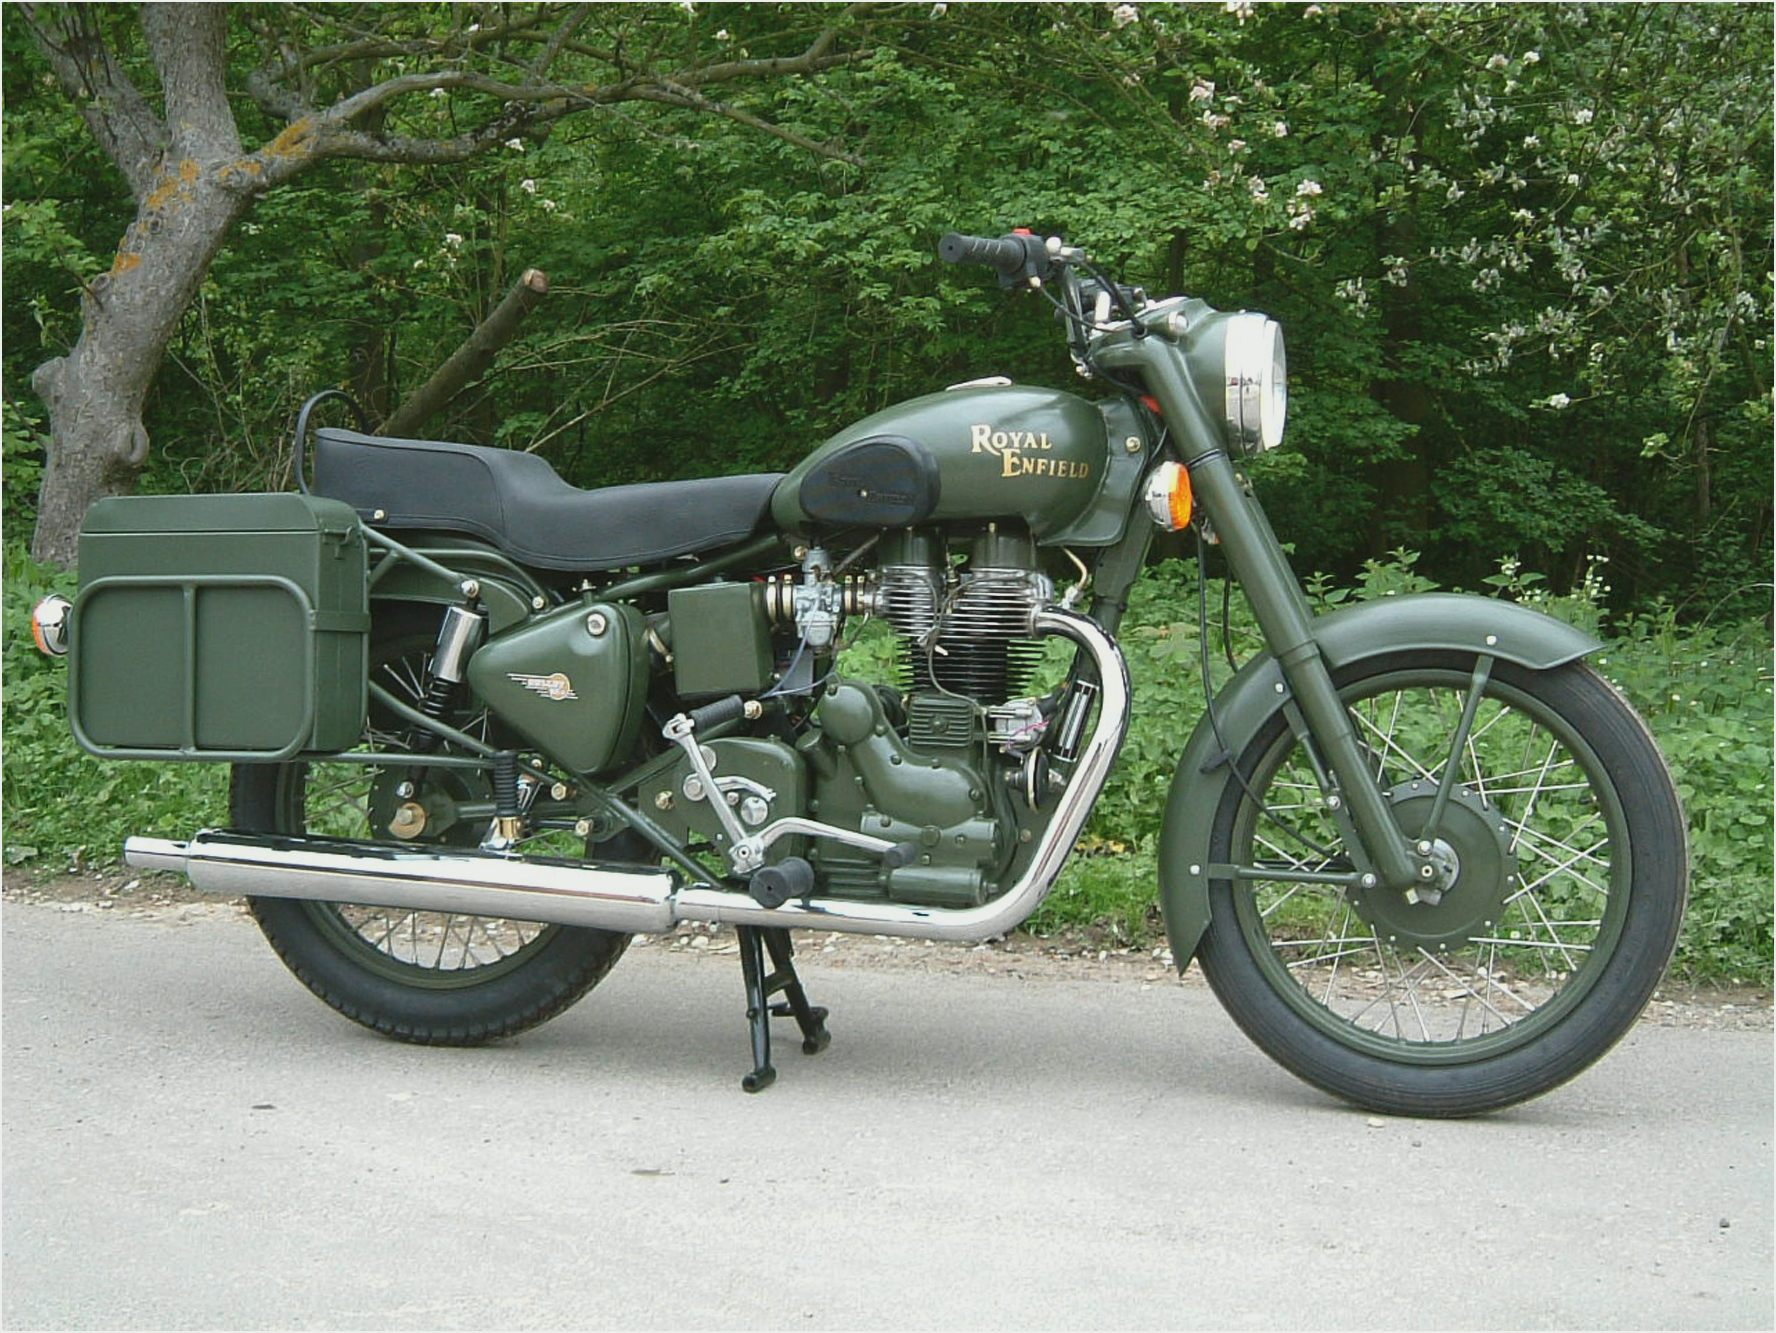 Royal Enfield Bullet 350 Army 1997 images #122761